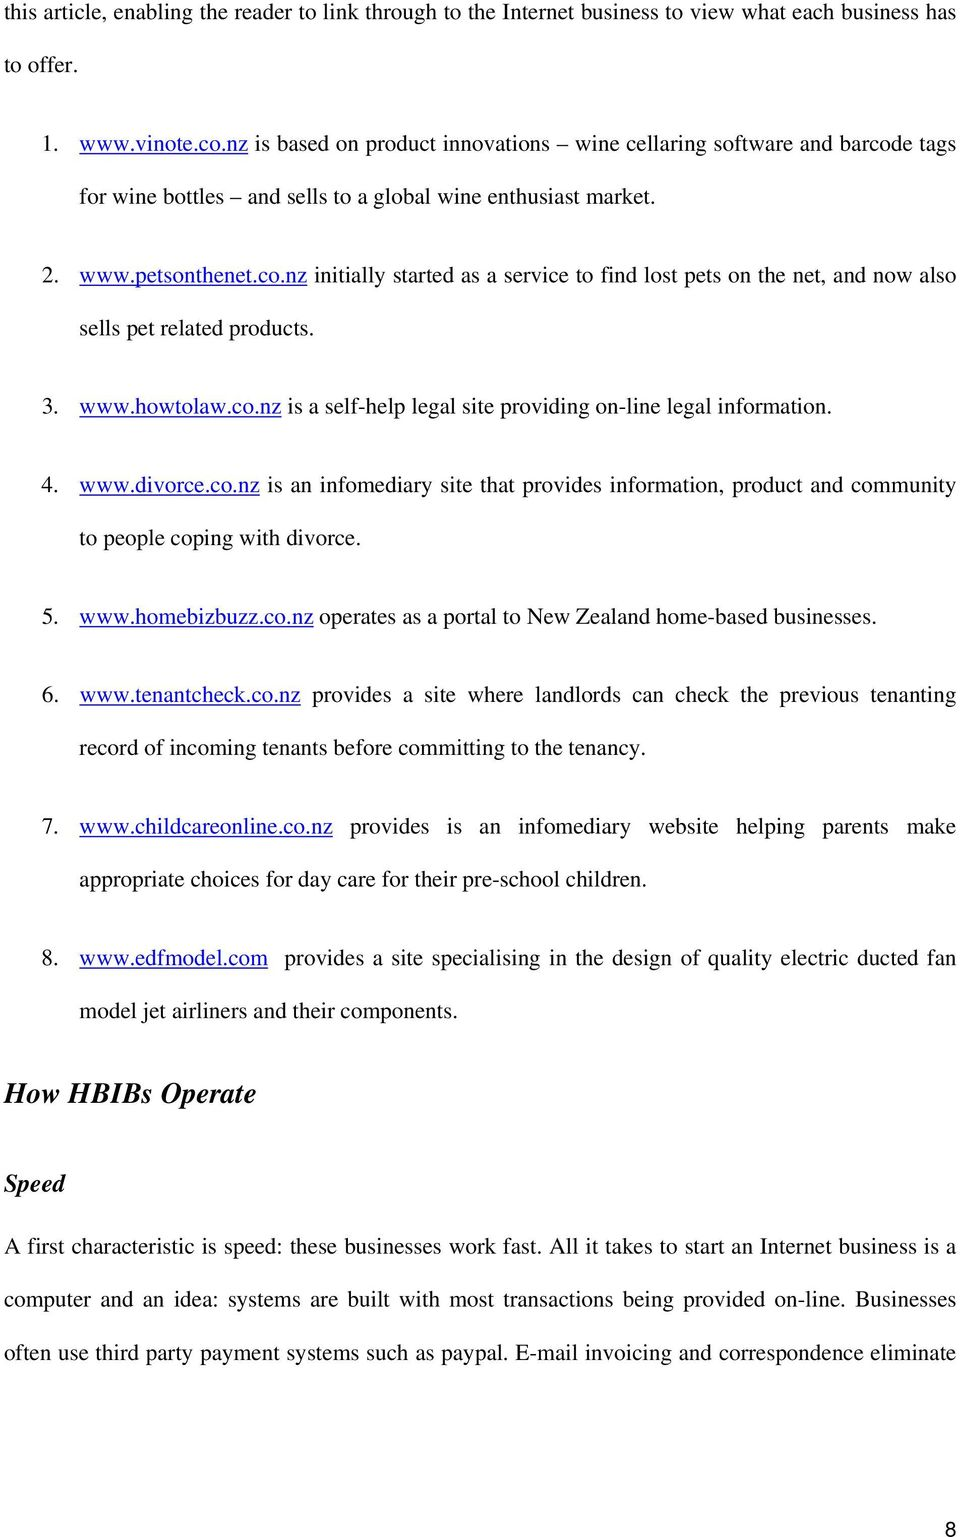 3. www.howtolaw.co.nz is a self-help legal site providing on-line legal information. 4. www.divorce.co.nz is an infomediary site that provides information, product and community to people coping with divorce.